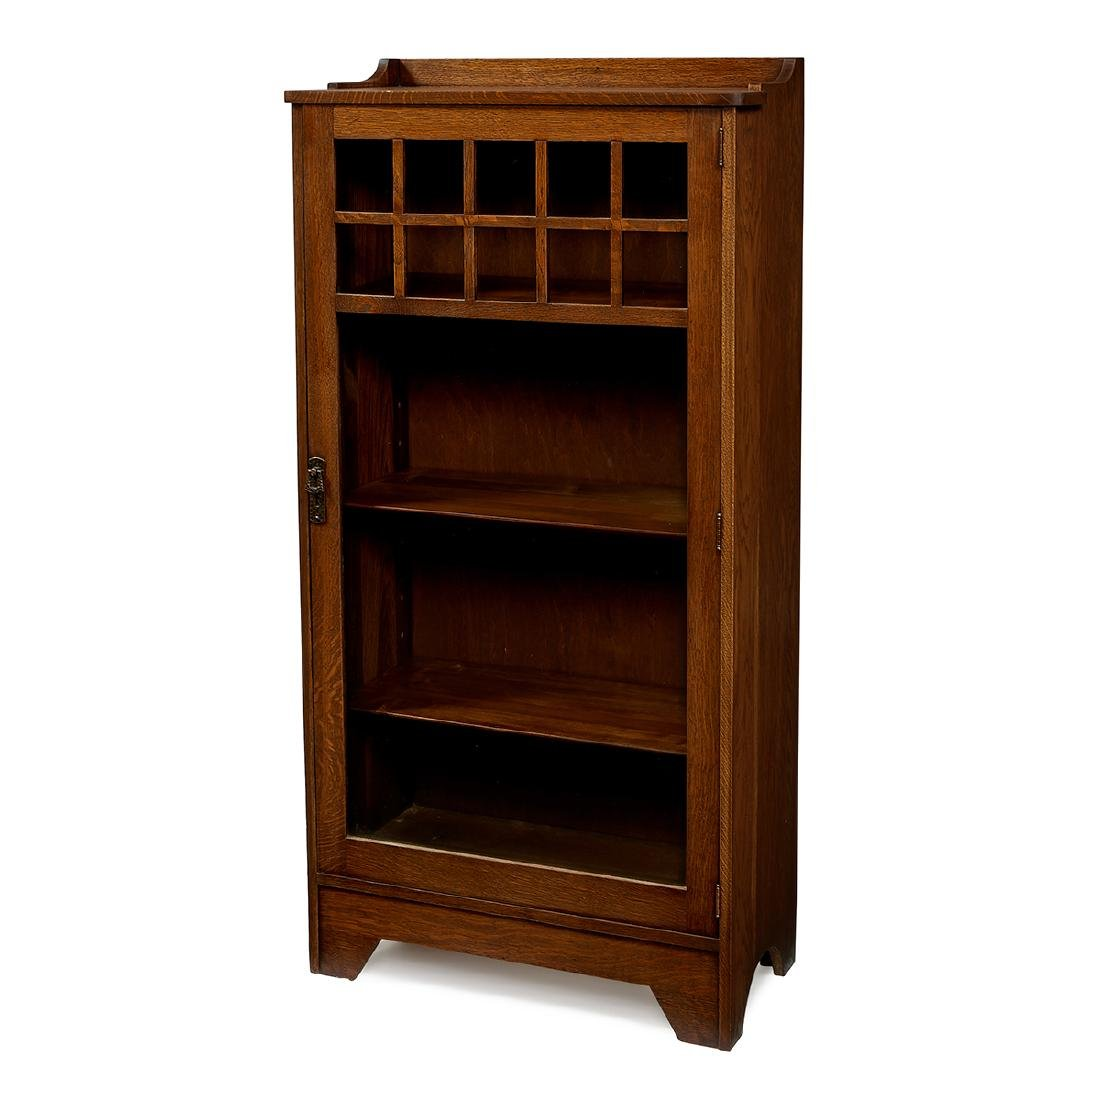 Lifetime, Oak Single-Door Bookcase, #7218